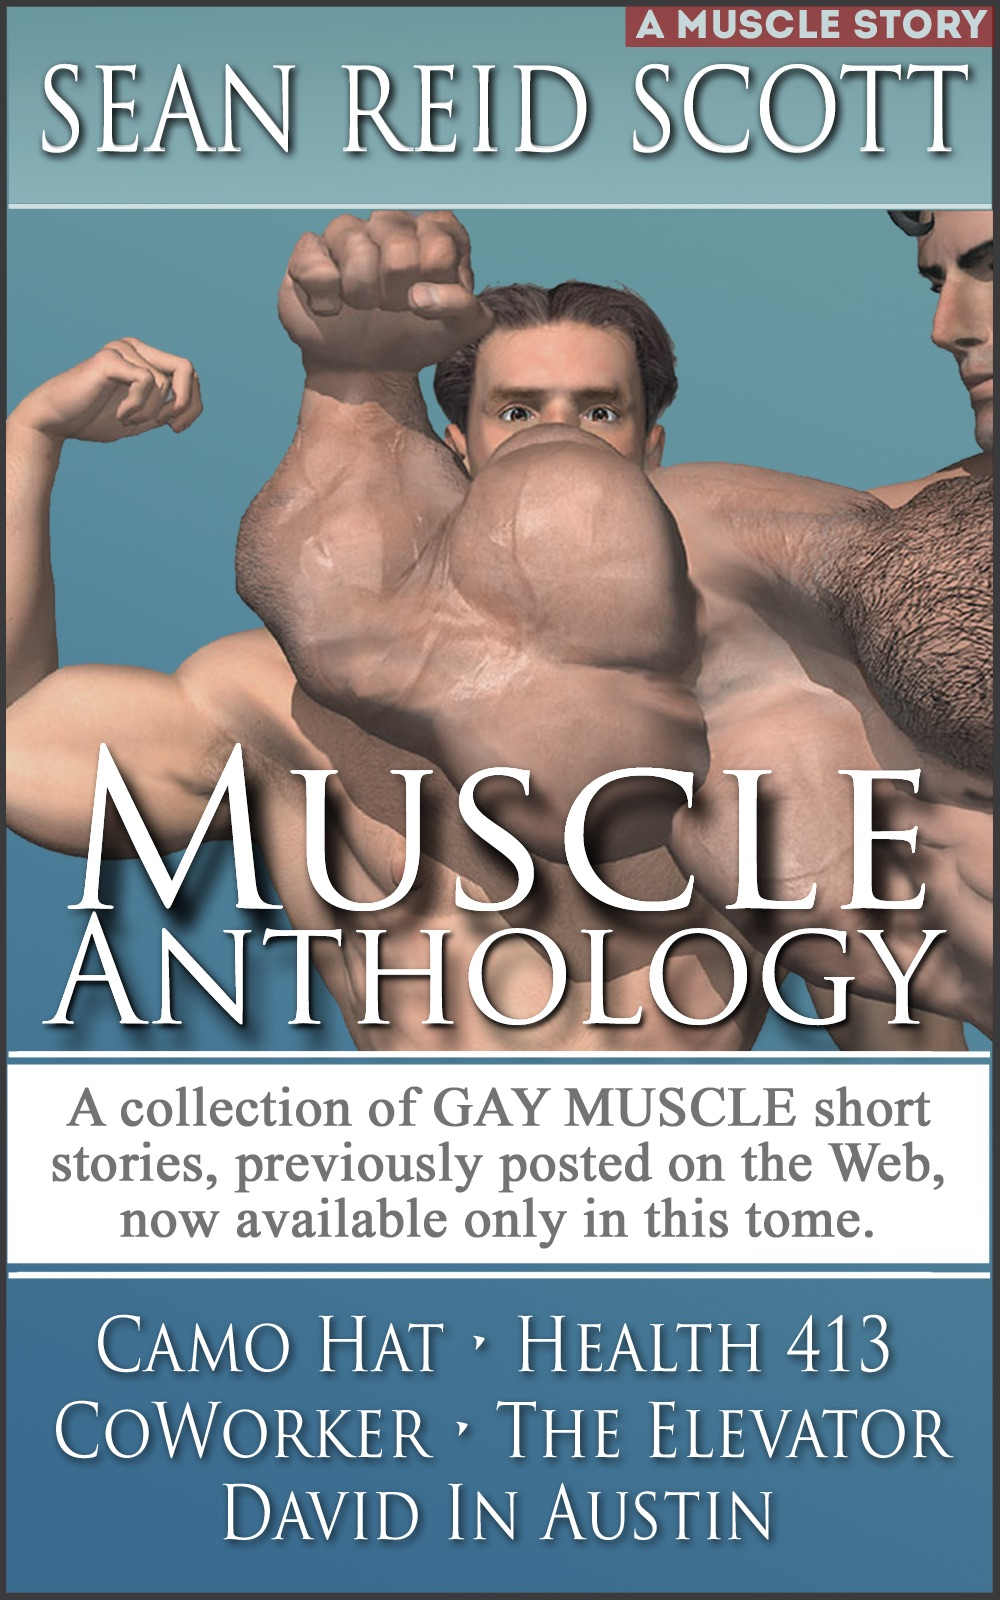 MuscleAnthology